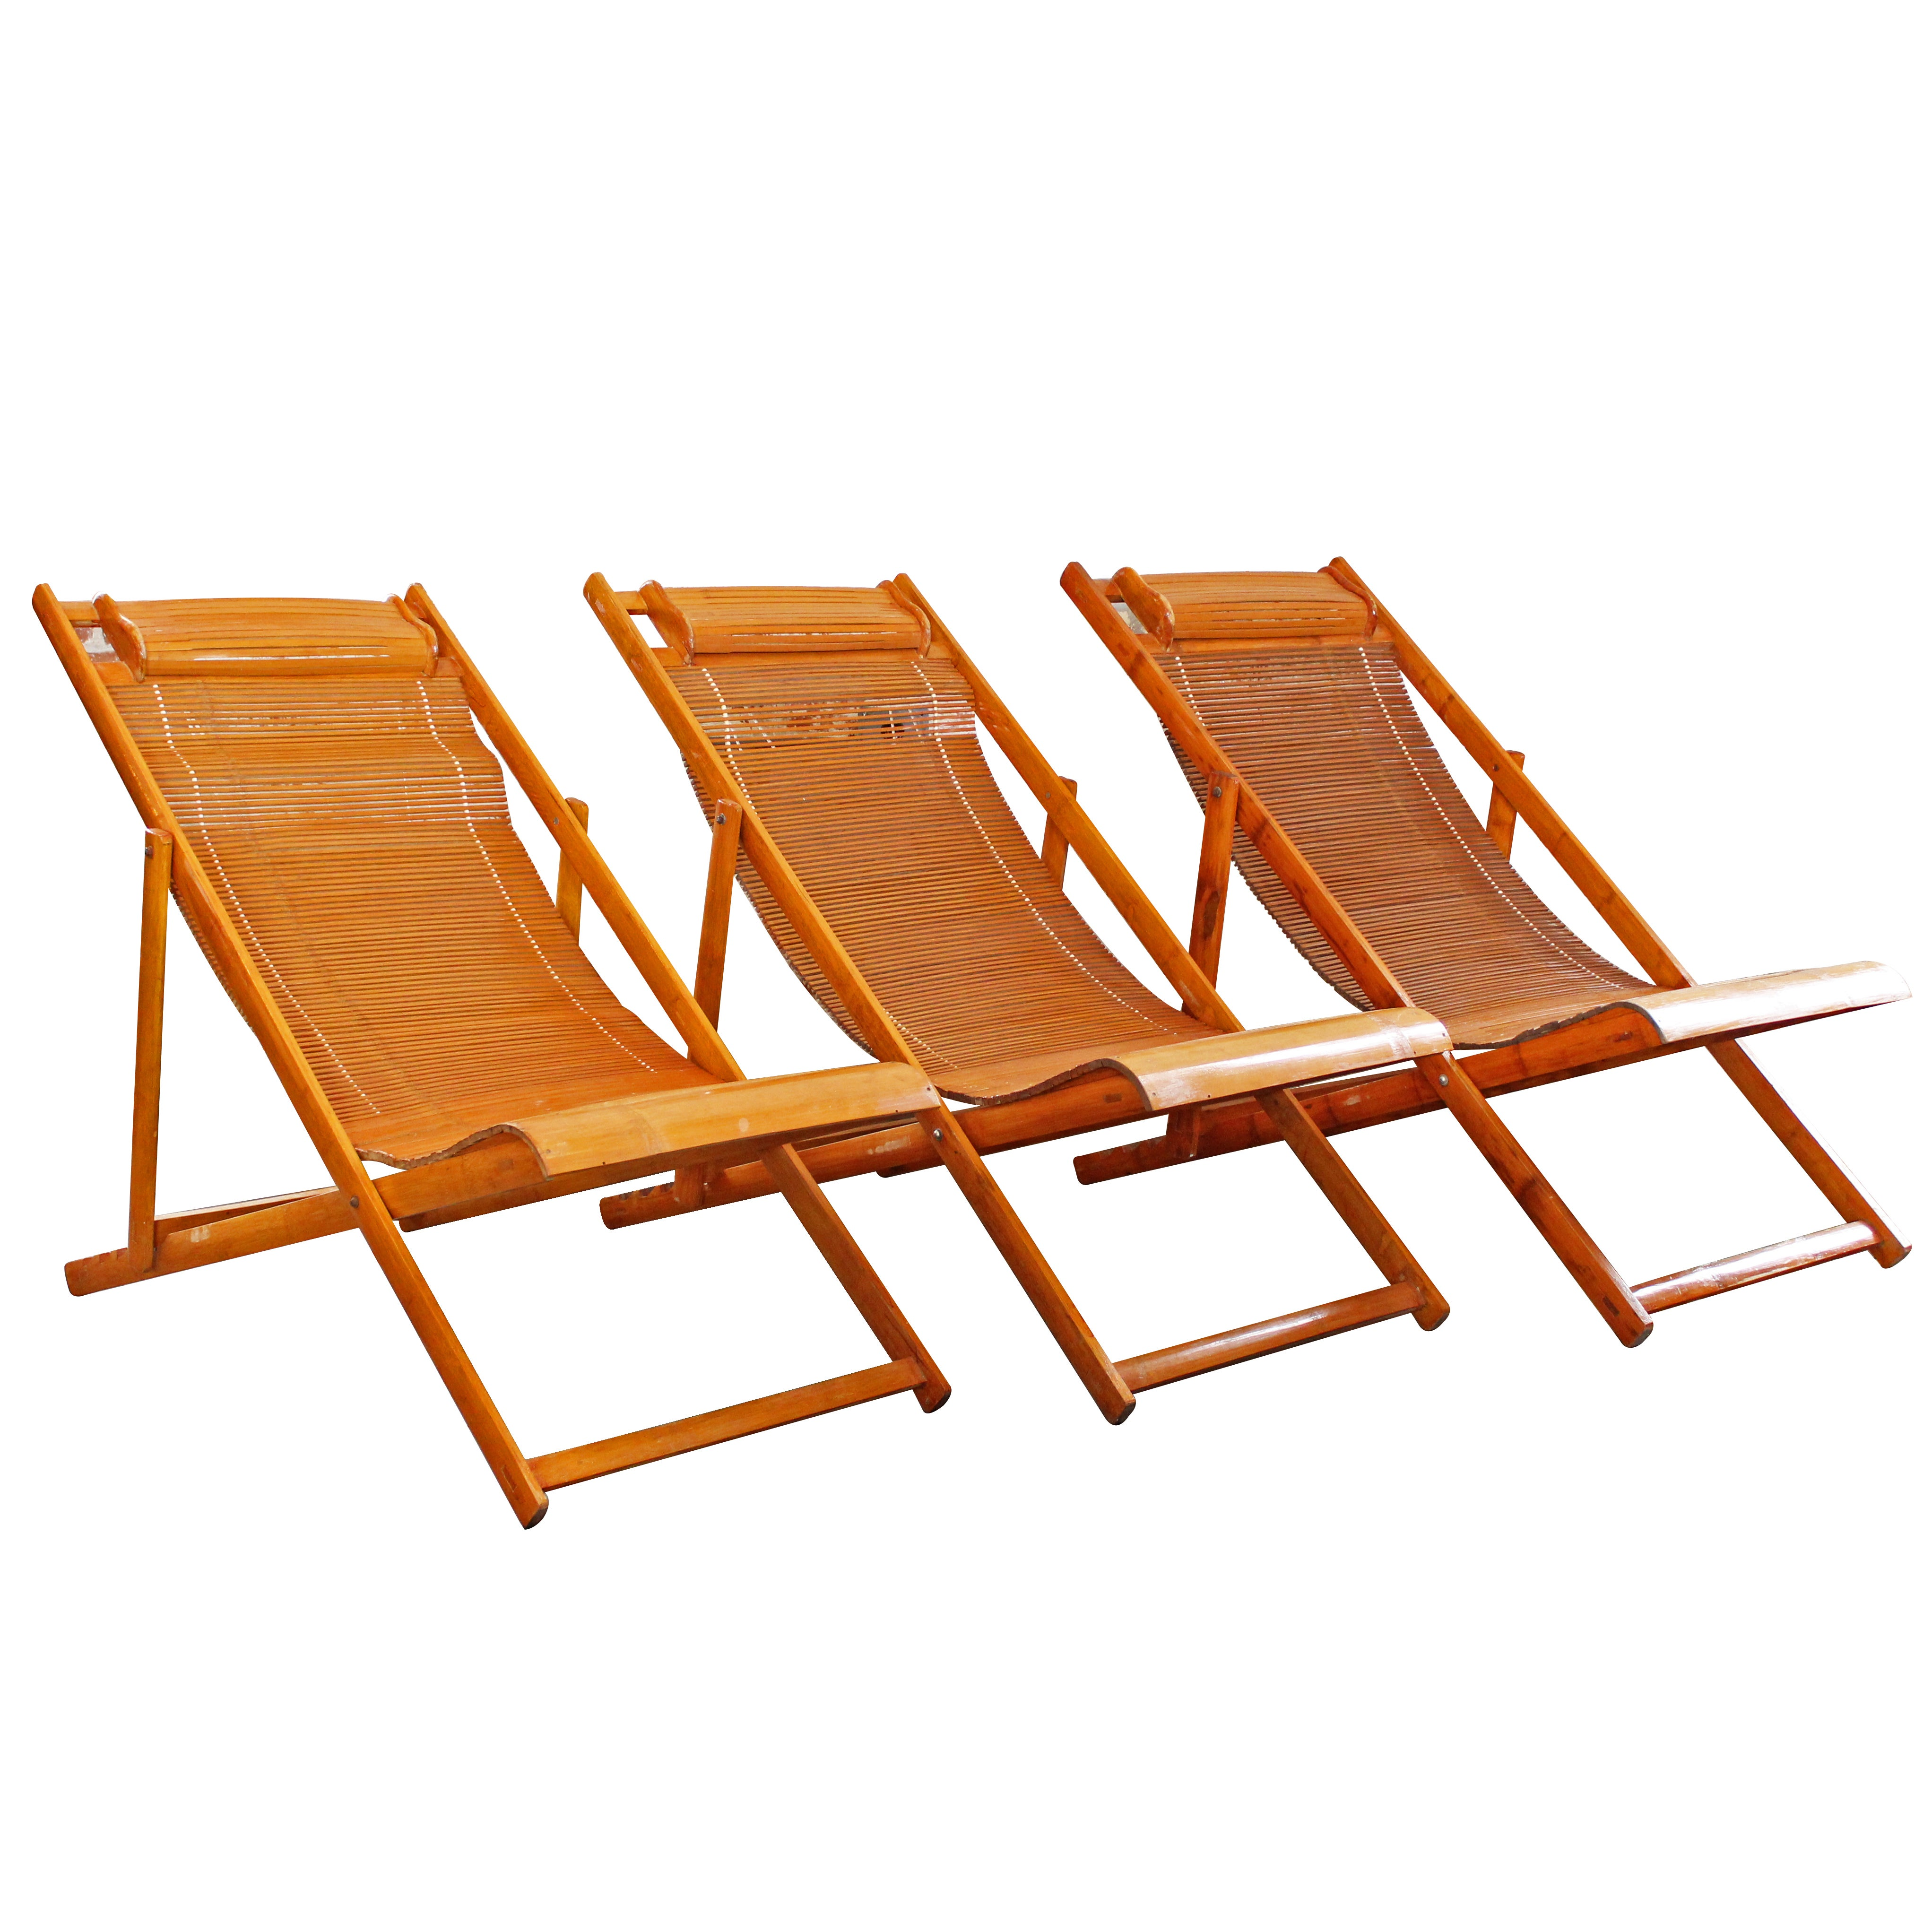 Folding Lounge Chair Vintage Bamboo Loungers Wood Japanese Deck Chairs Outdoor Fold Up Lounge Chairs